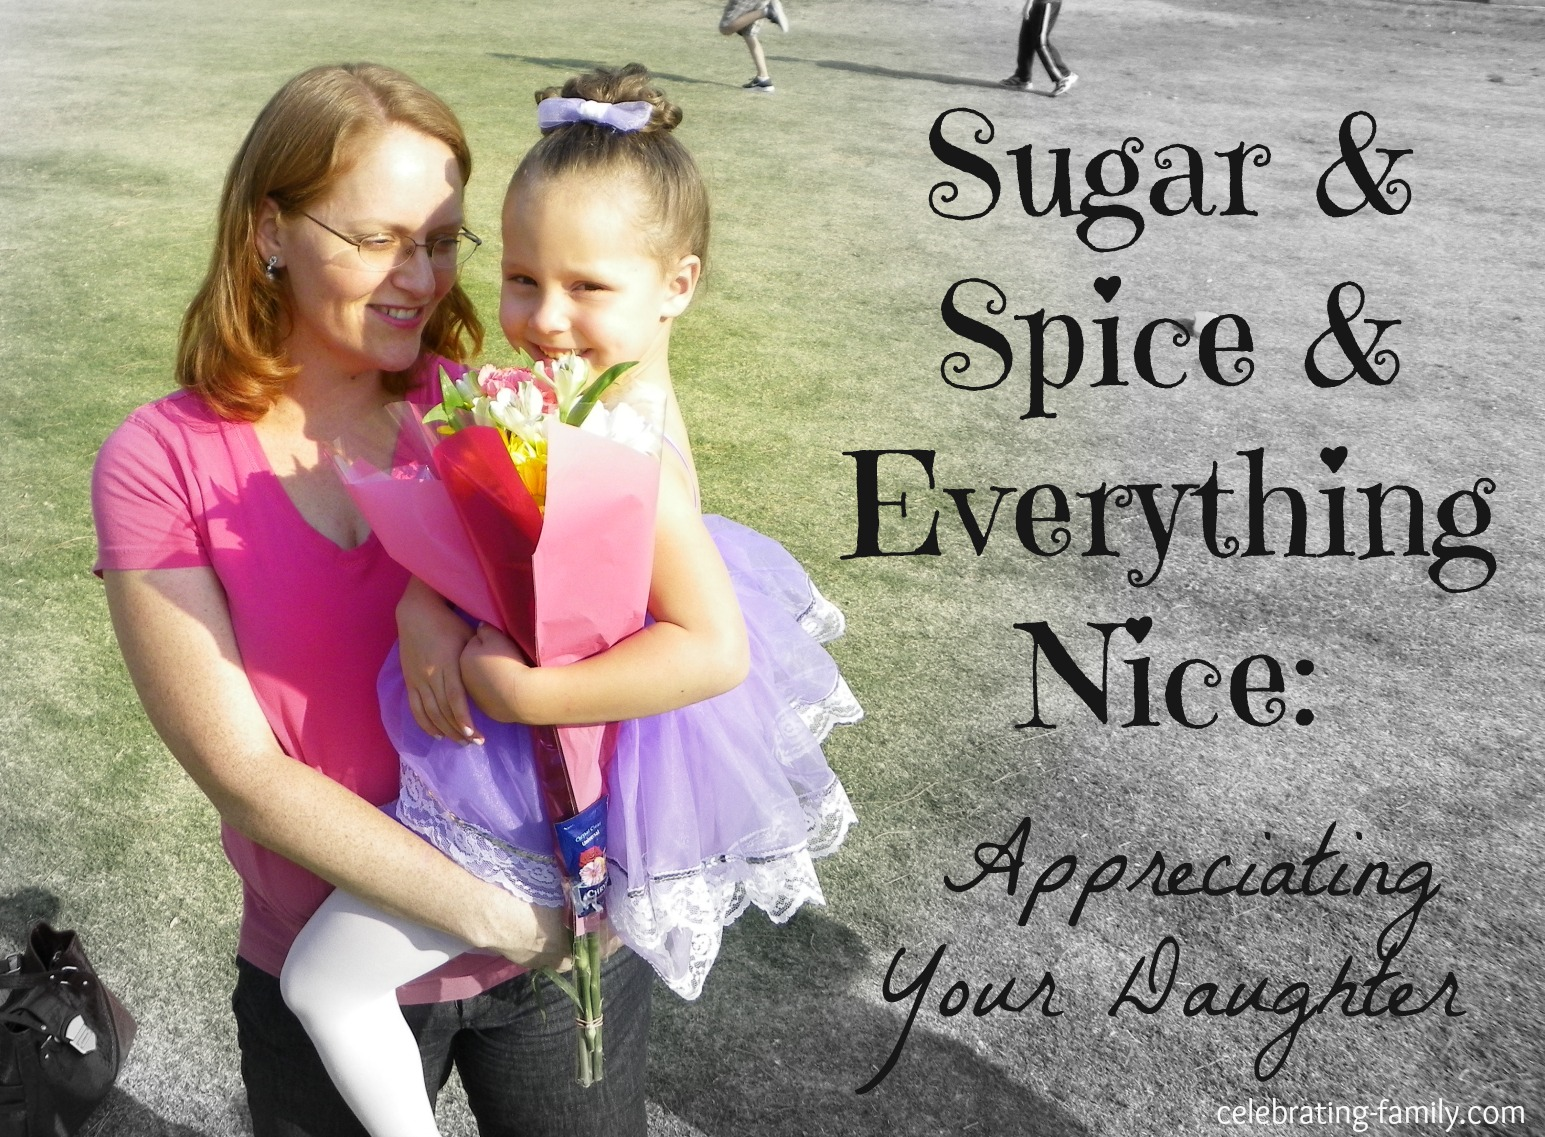 Appreciating Your Daughter